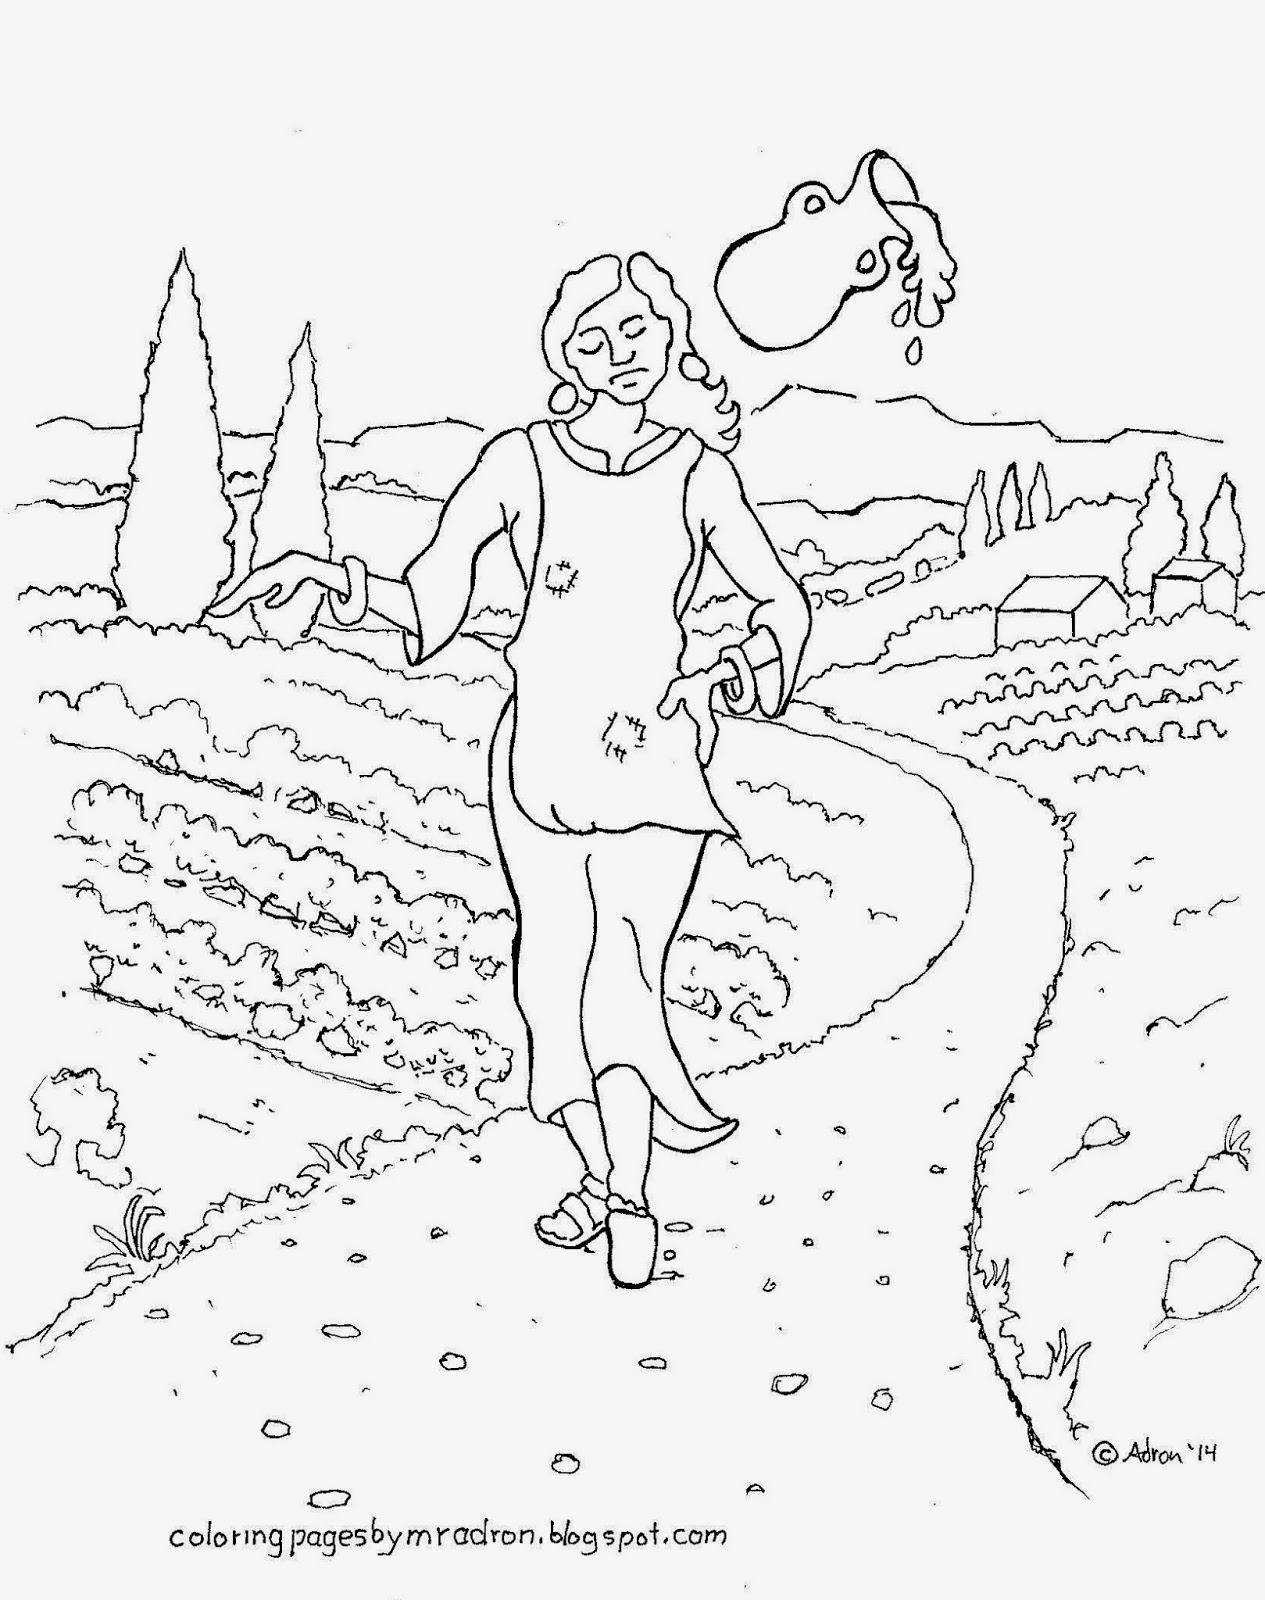 Coloring Pages For Kids By Mr Adron Aesop S Fable Coloring Page The Milk Maid Don T Count